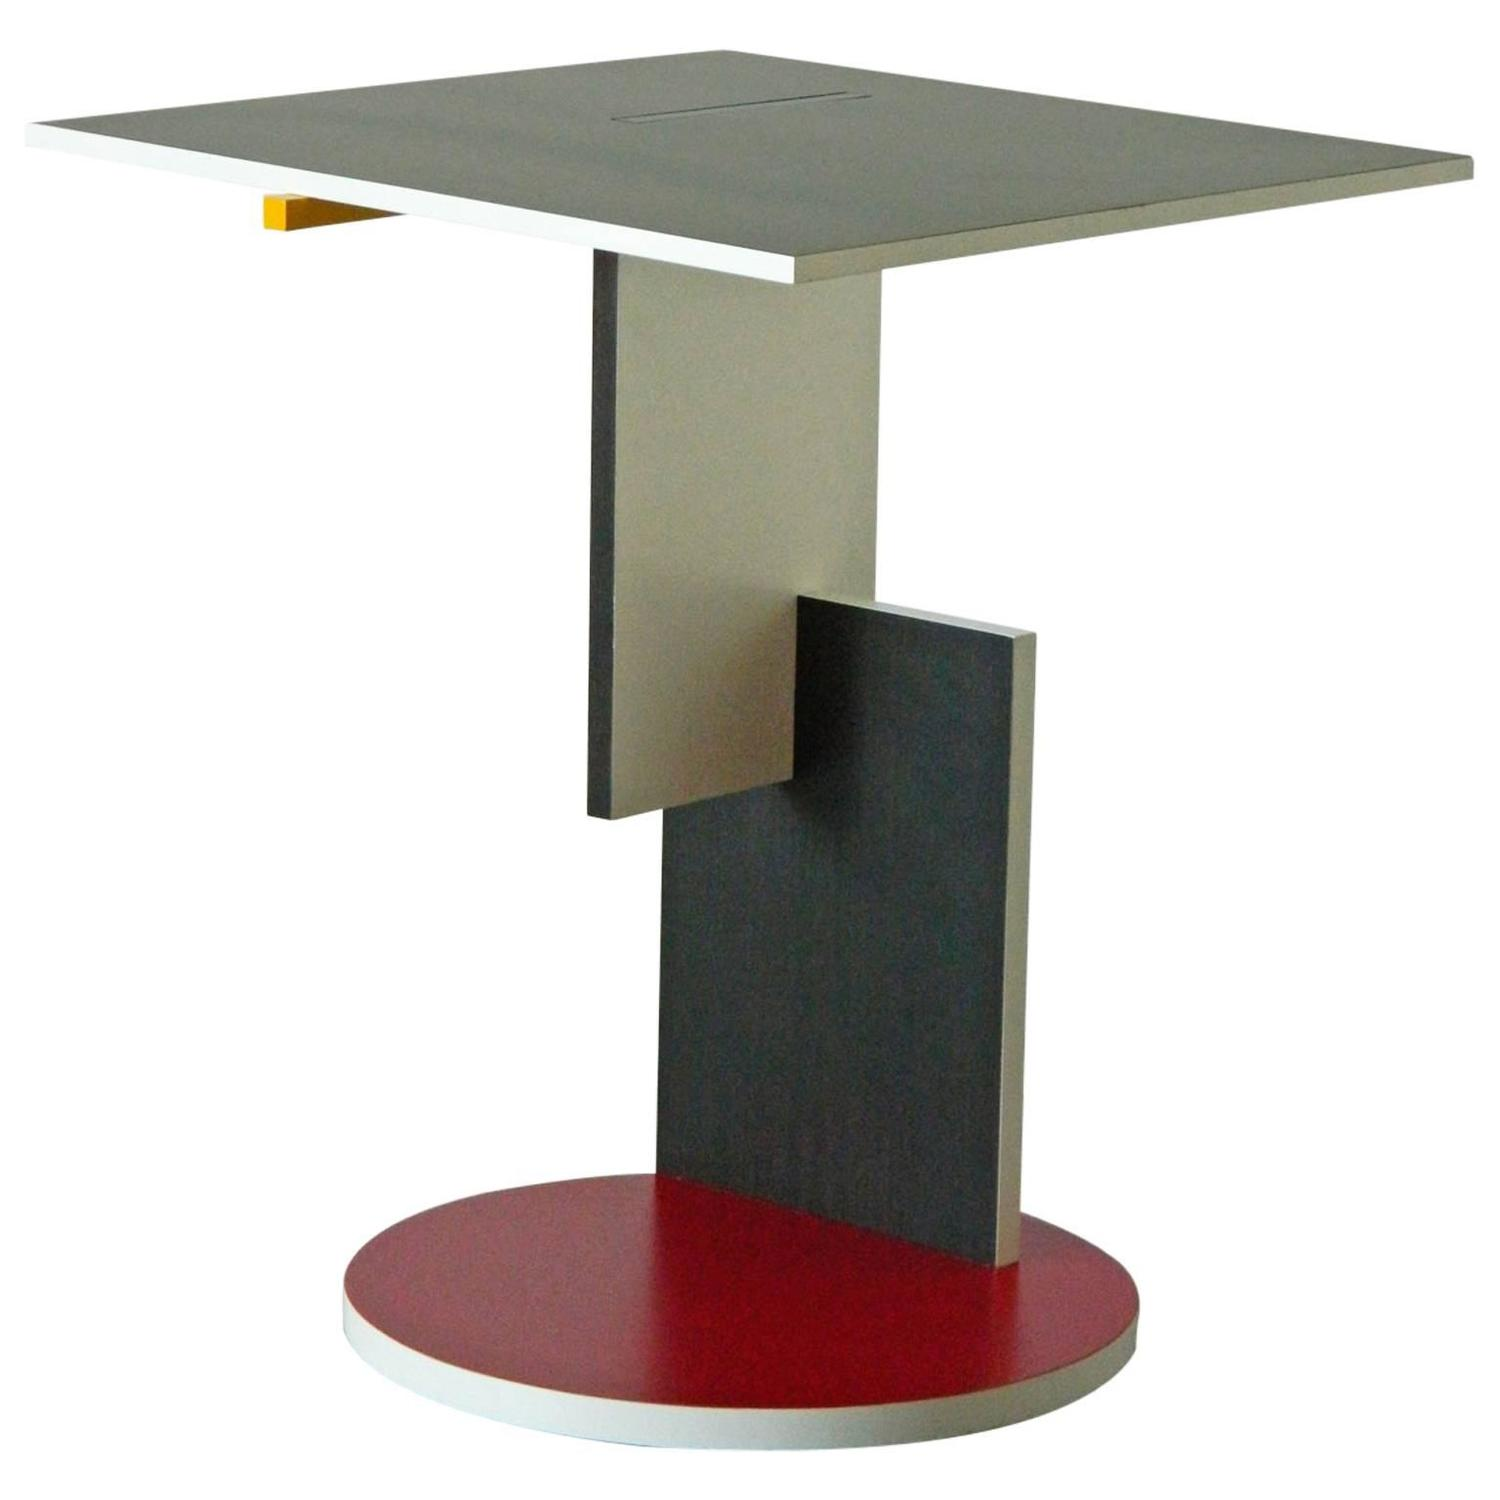 Gerrit rietveld chair for sale - Gerrit Rietveld Schroeder Table